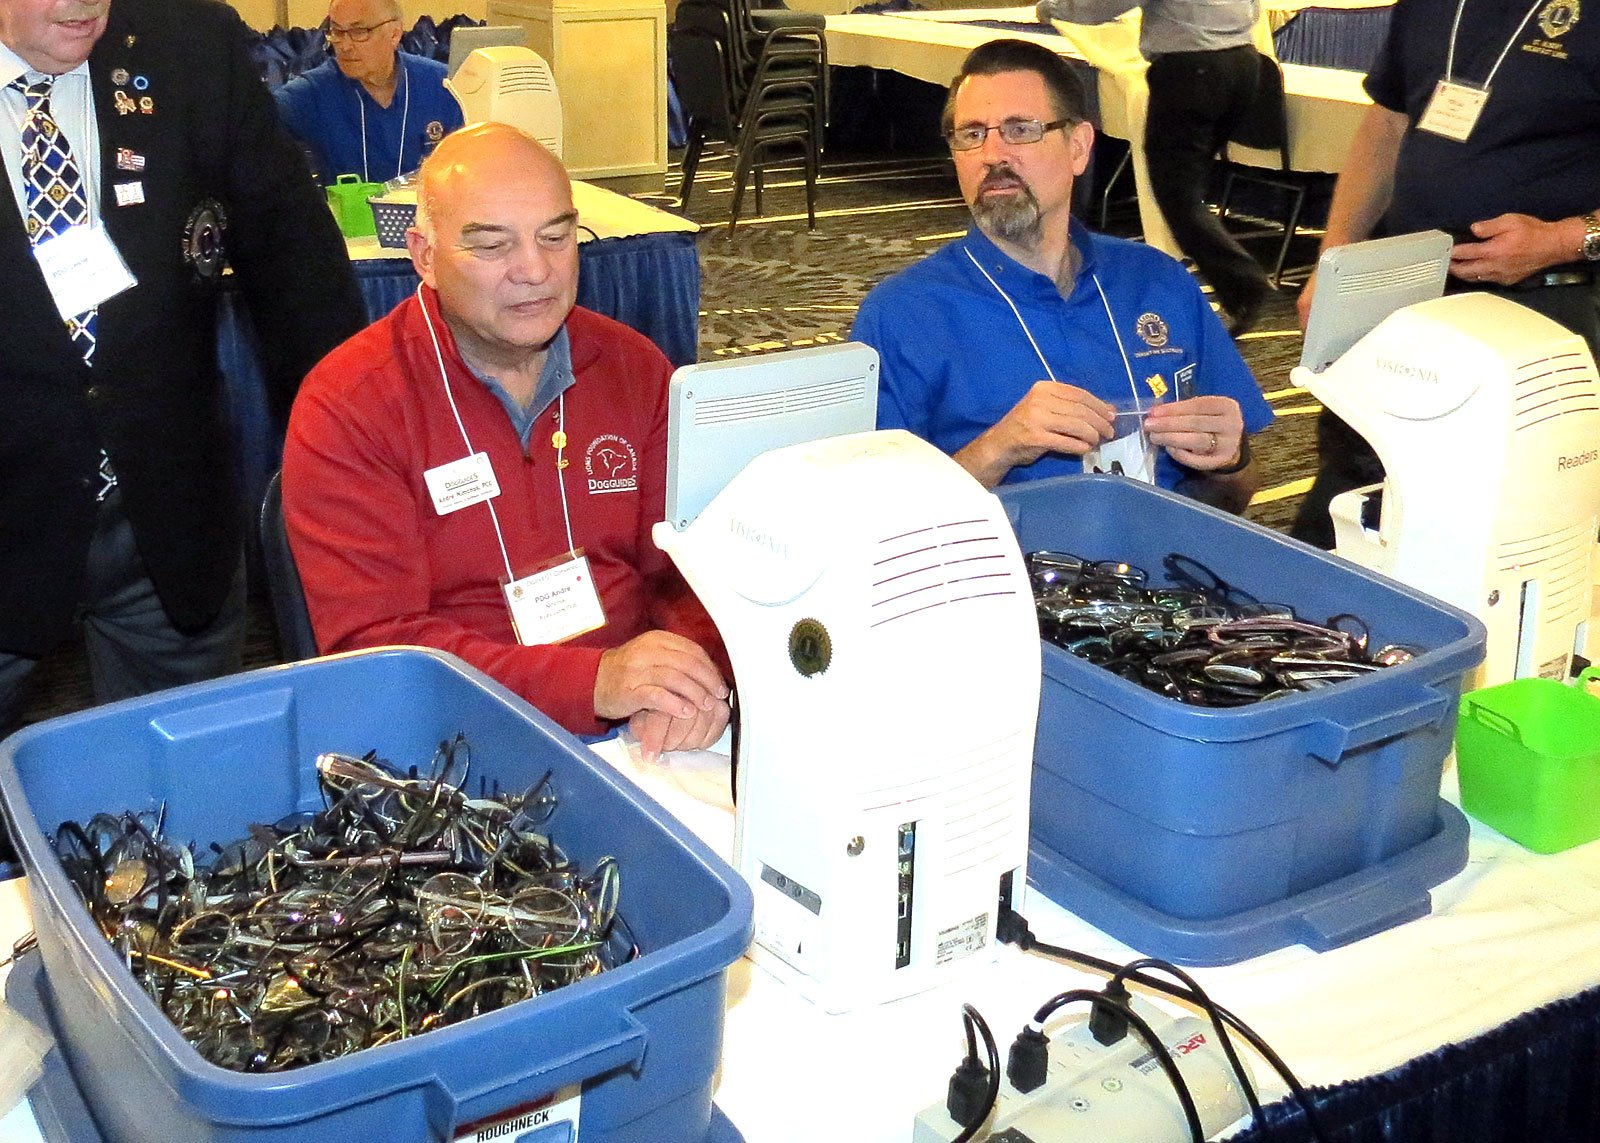 Lions sorting and classifying recycled eyeglasses | Nov 2017